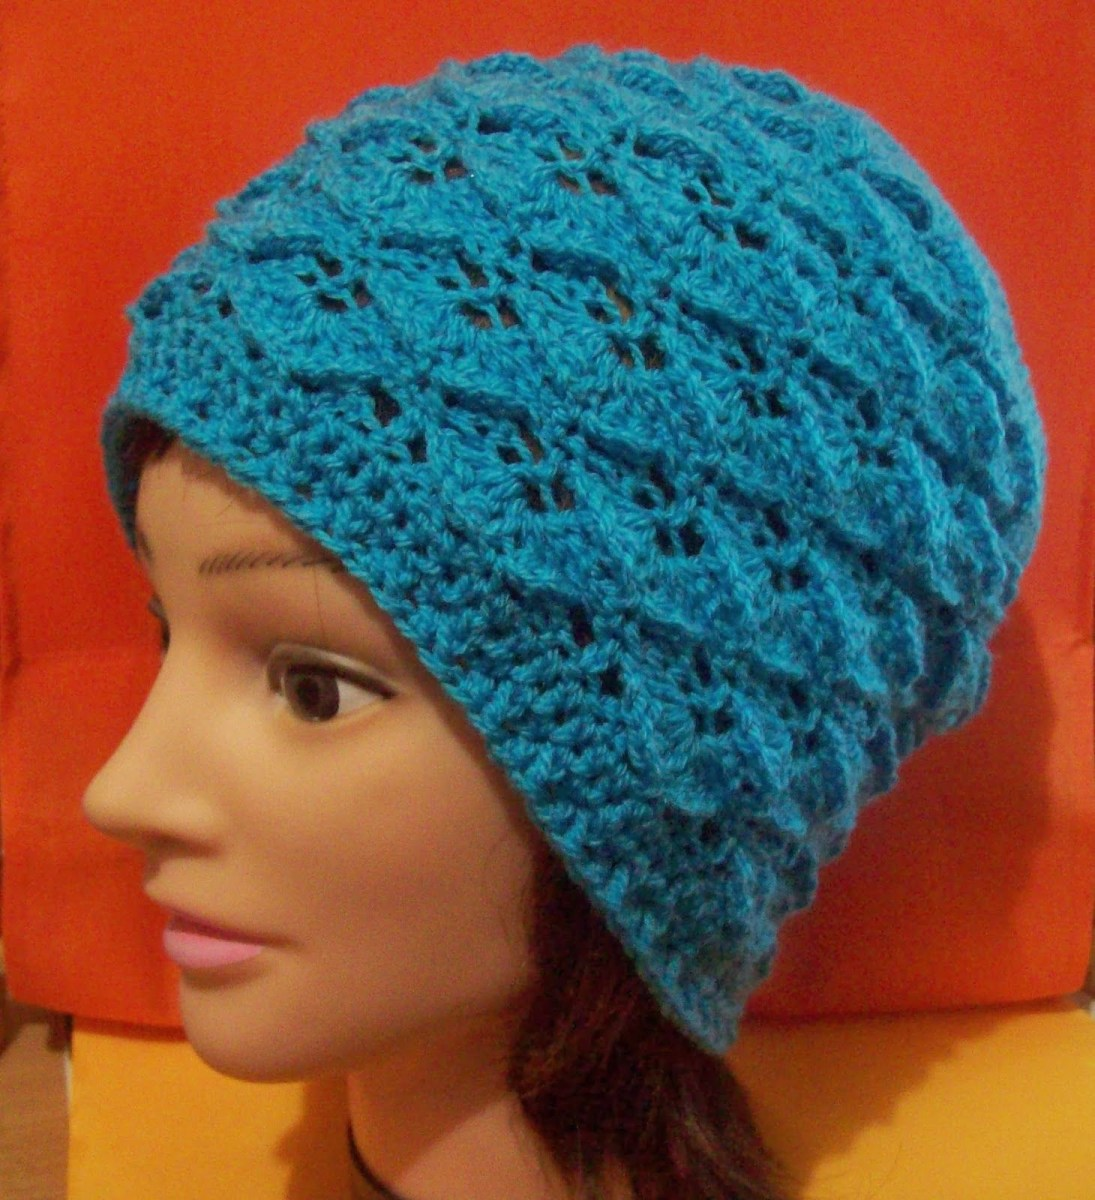 Free Crochet Hat Patterns For Adults The Dragon Scale Adult Hat Free Crochet Pattern Projects To